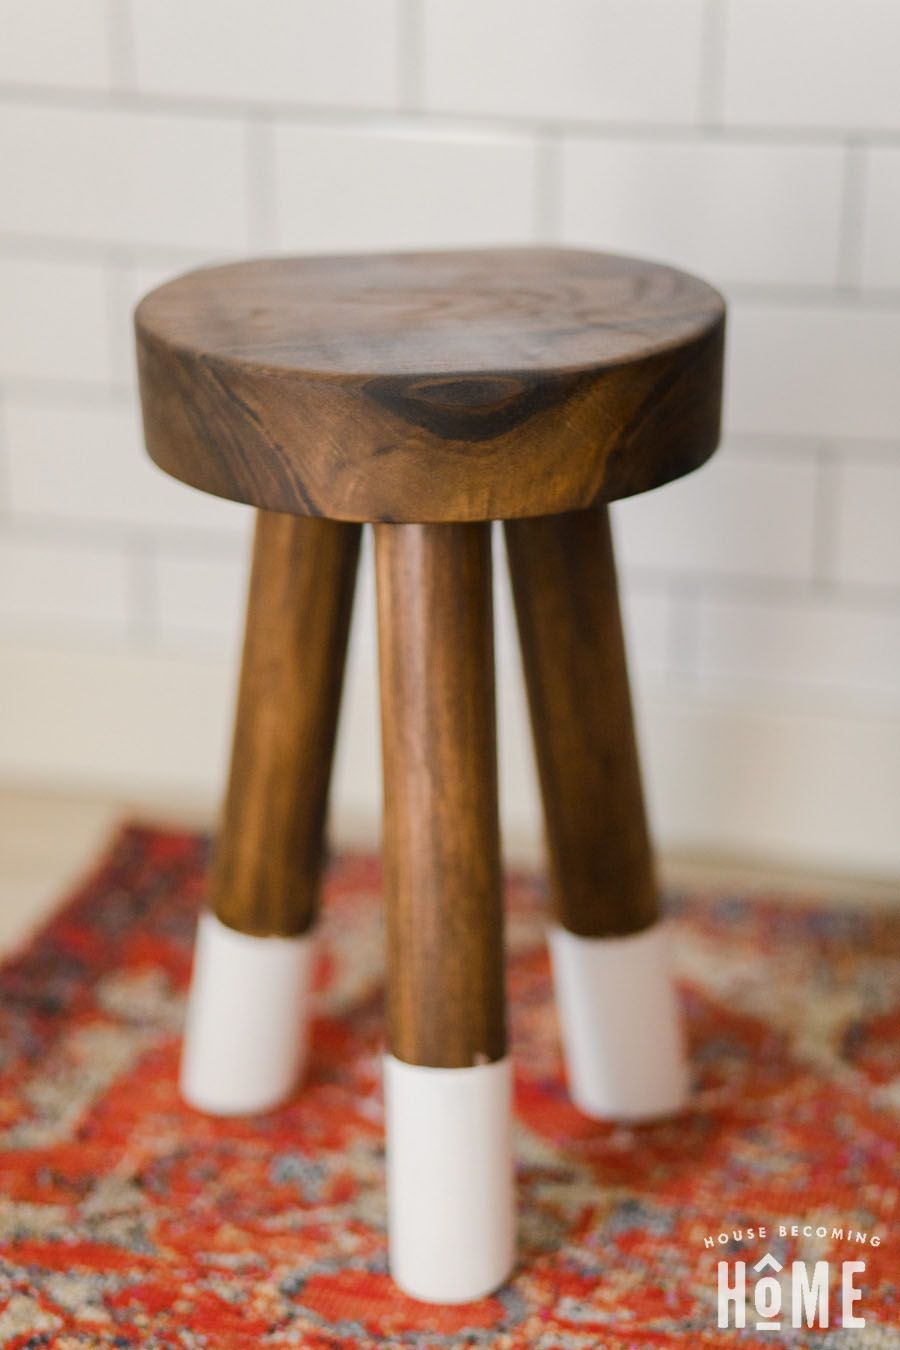 How To Make A Diy Dip Dyed Stool Out Of Walnut Scraps And Dowels